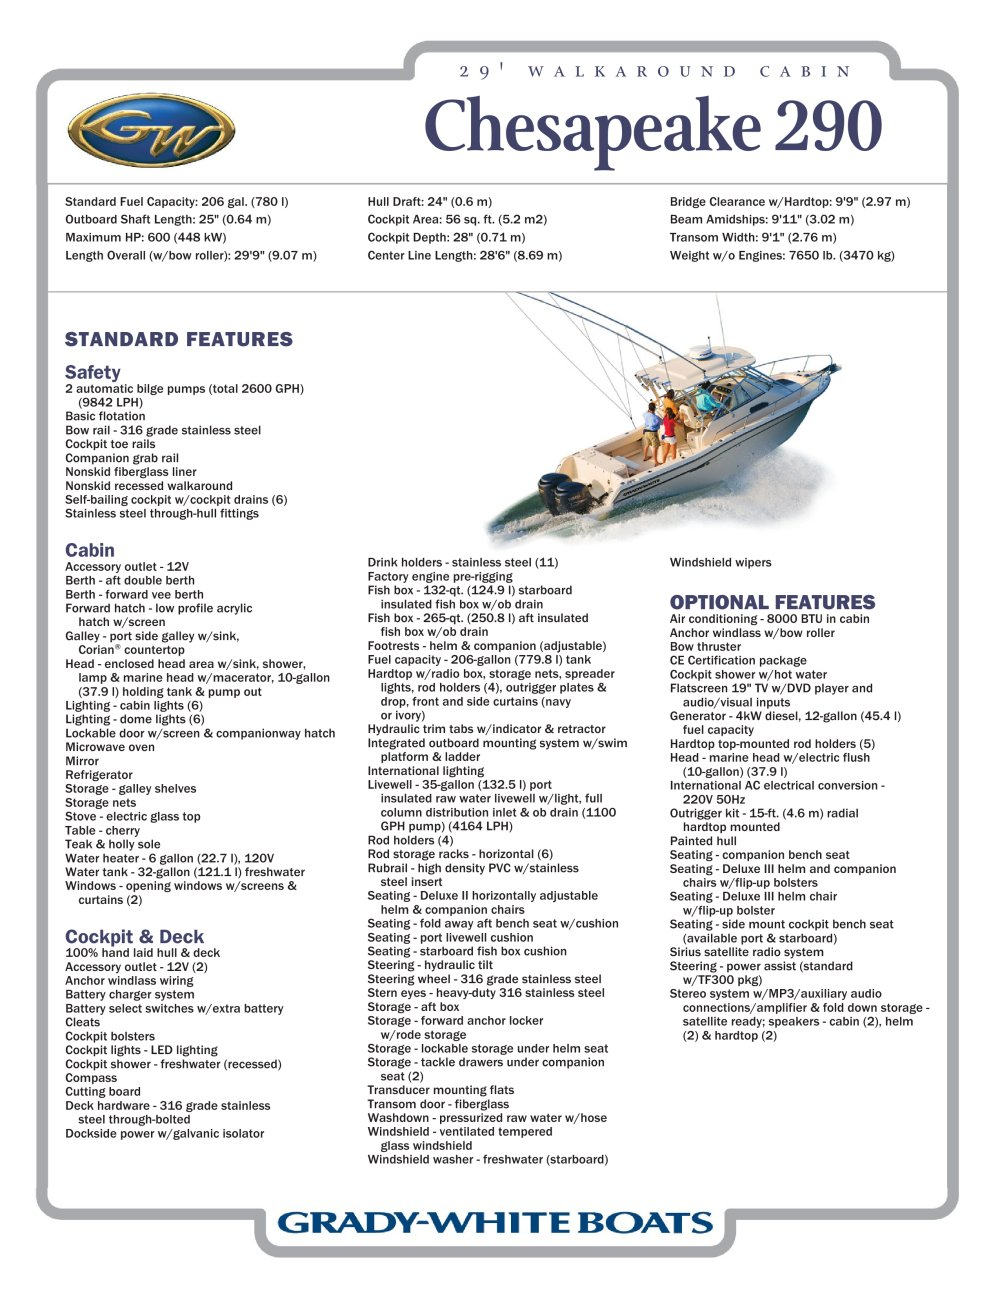 Chesapeake 290 Grady White Pdf Catalogues Documentation Wiring Boat Cabin Lights 1 Pages